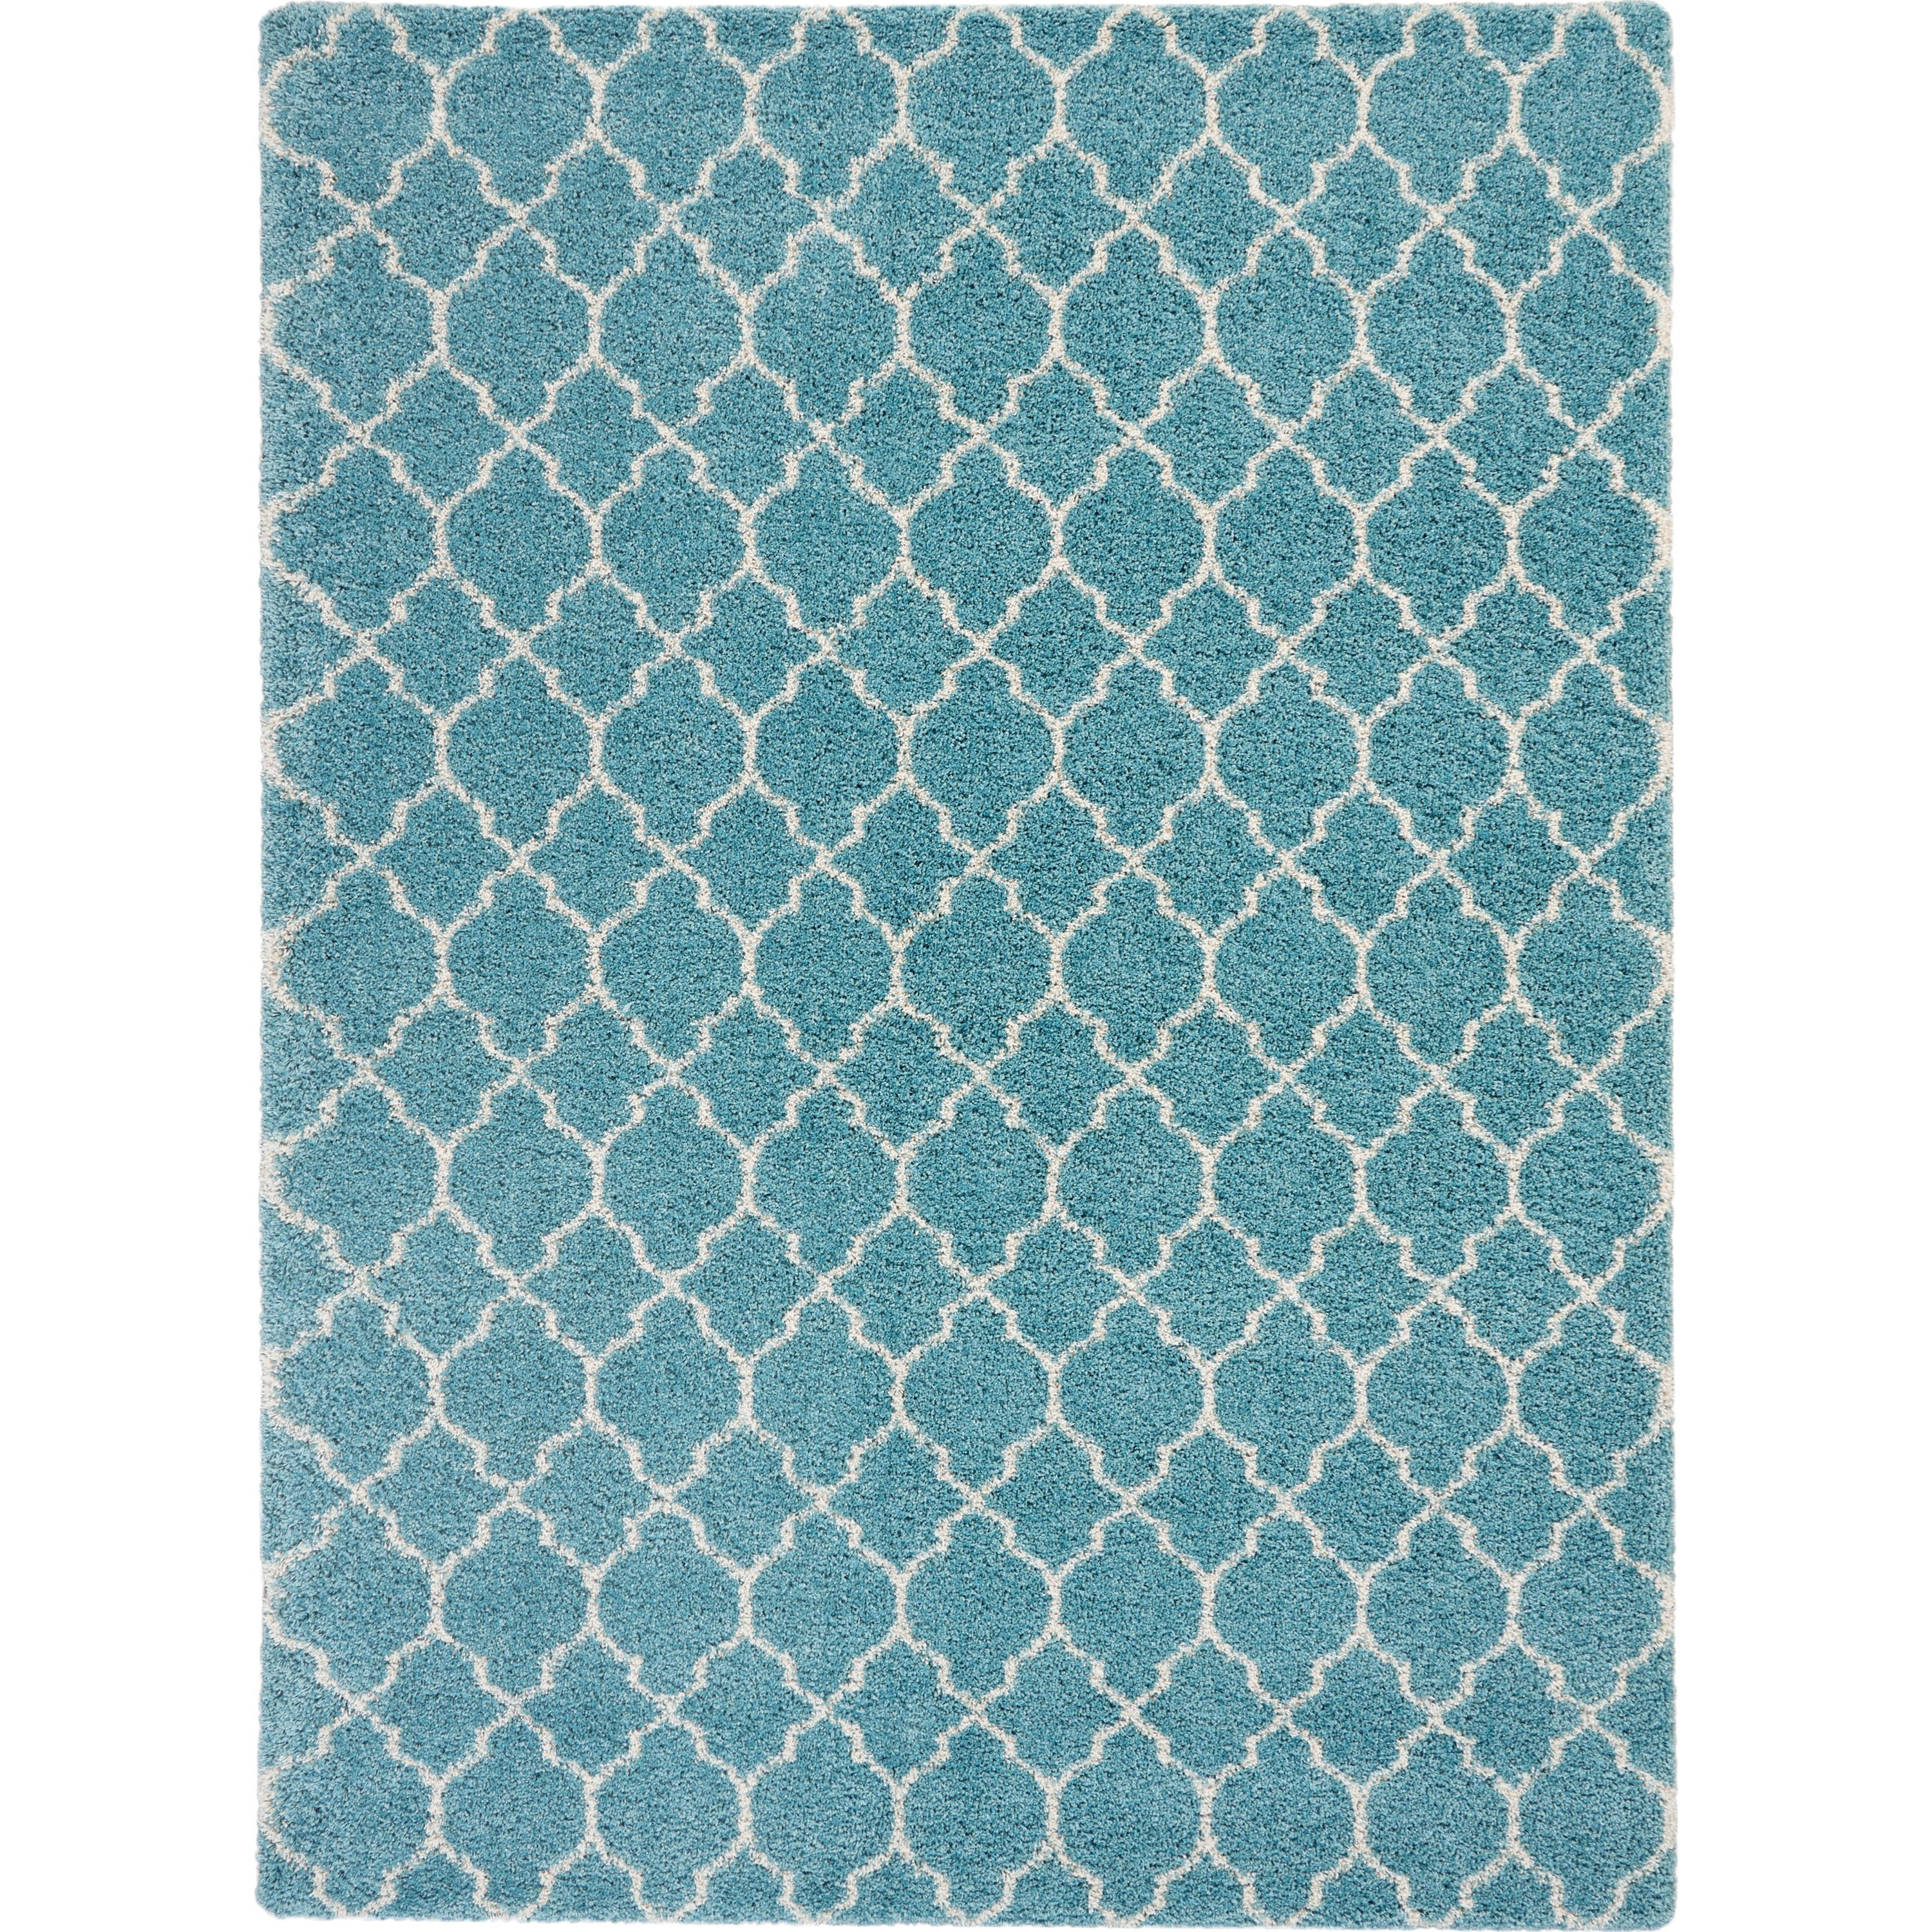 Amore Amore AMOR2 Blue 7'x10'   Rug by Nourison at Home Collections Furniture